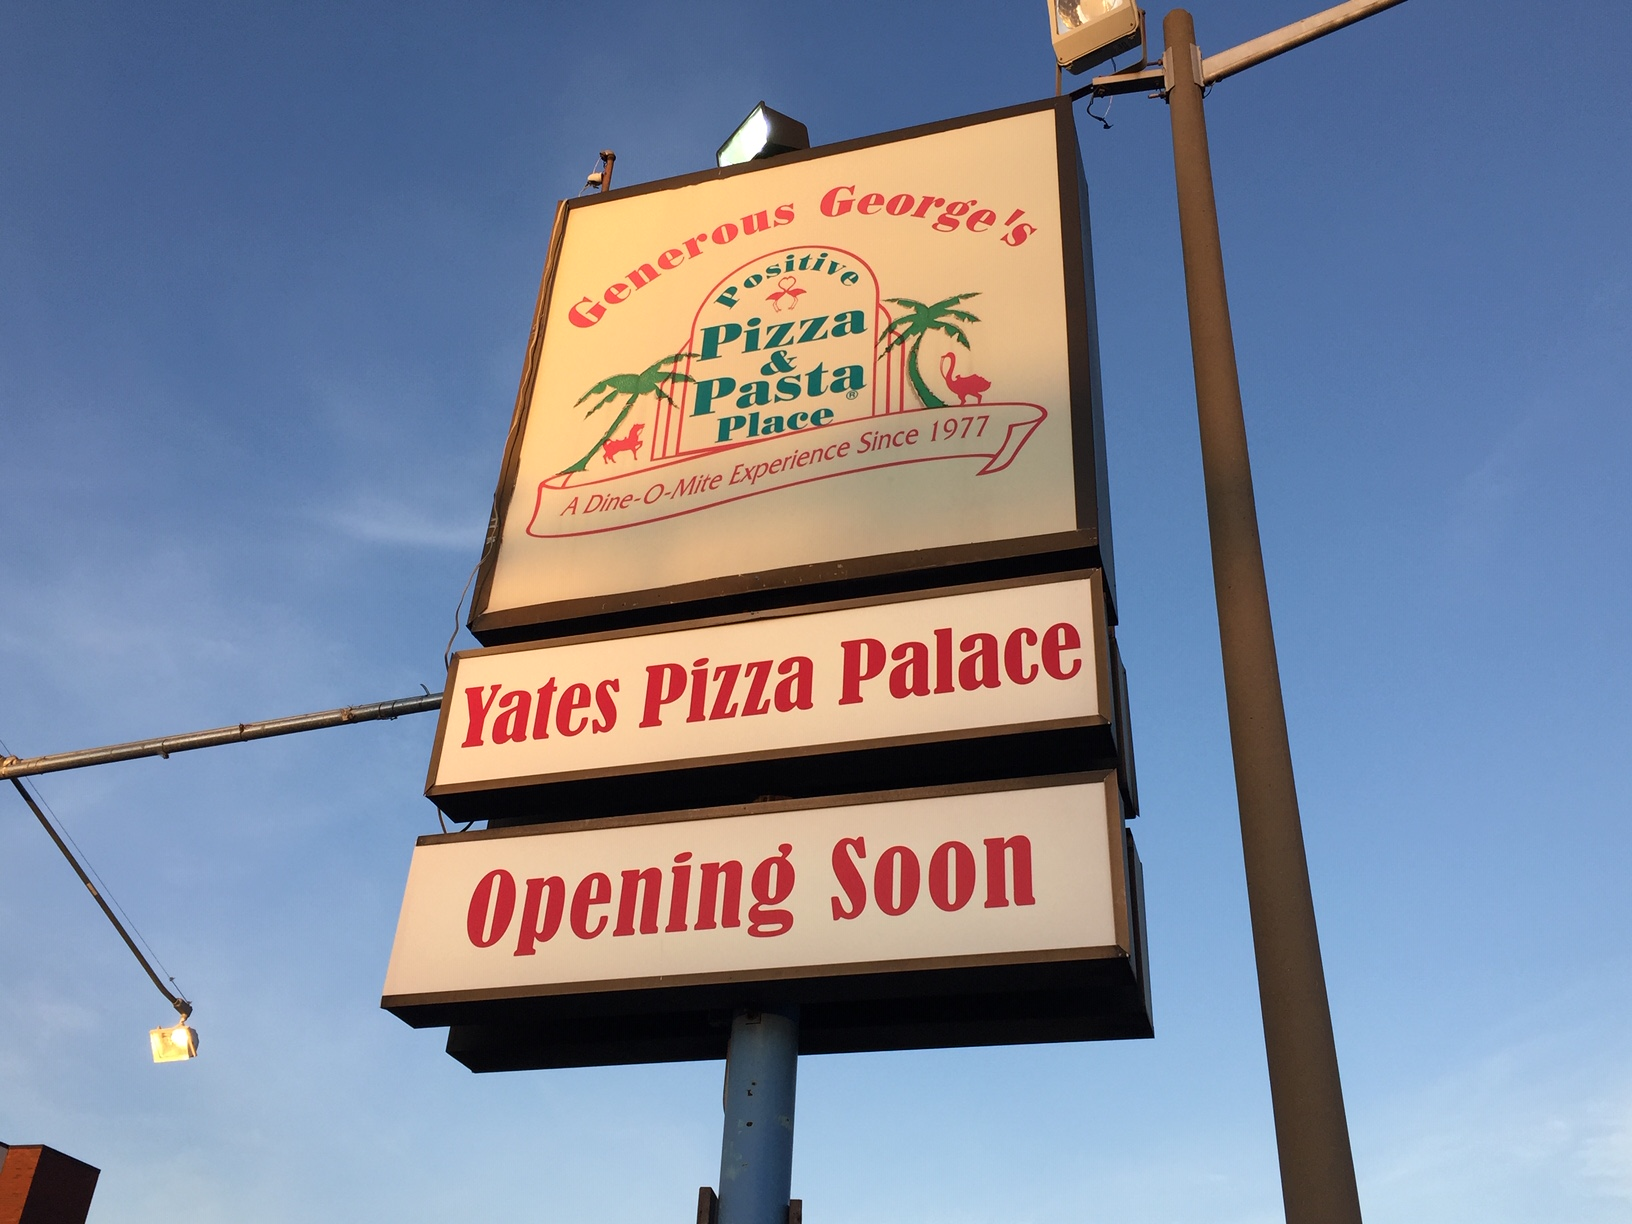 The long-awaited opening of Yates Pizza Palace on Duke Street in the Taylor Run area of Alexandria, Virginia is coming with new SUP approval by the City.